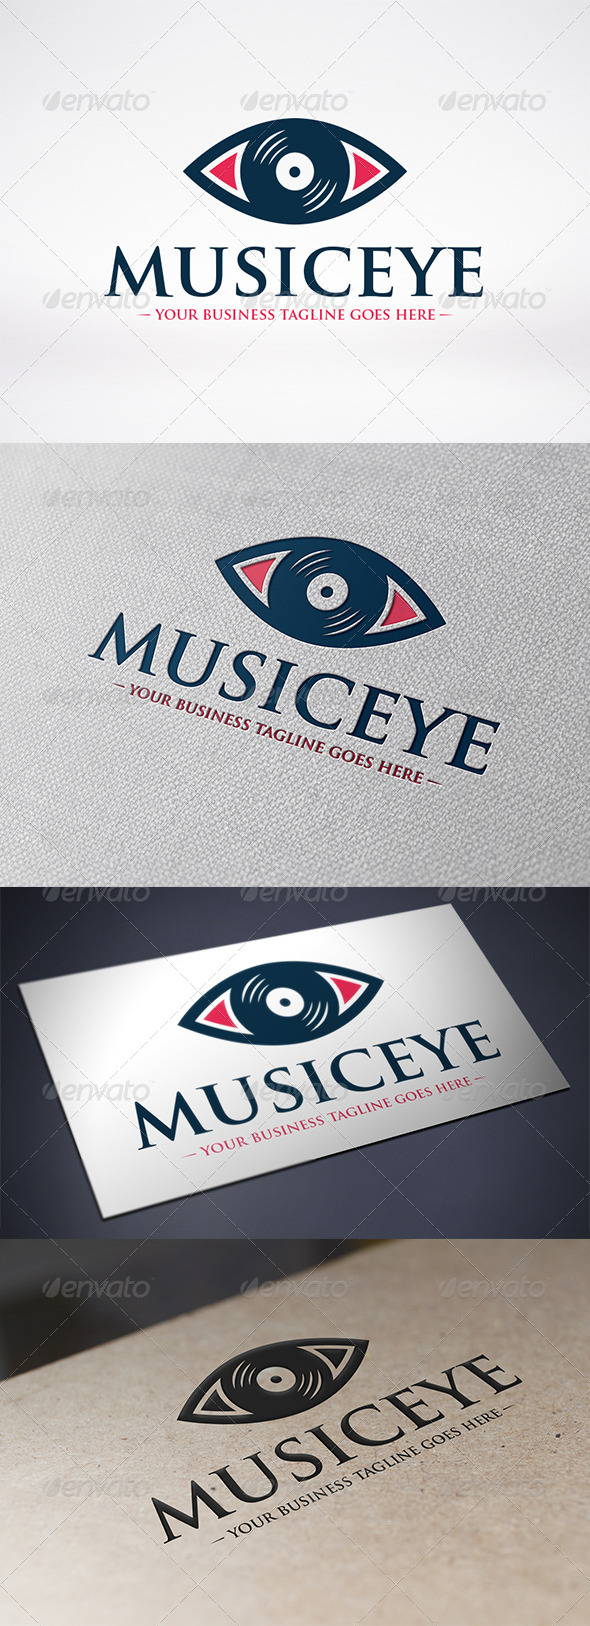 Music Eye Logo Template - Symbols Logo Templates